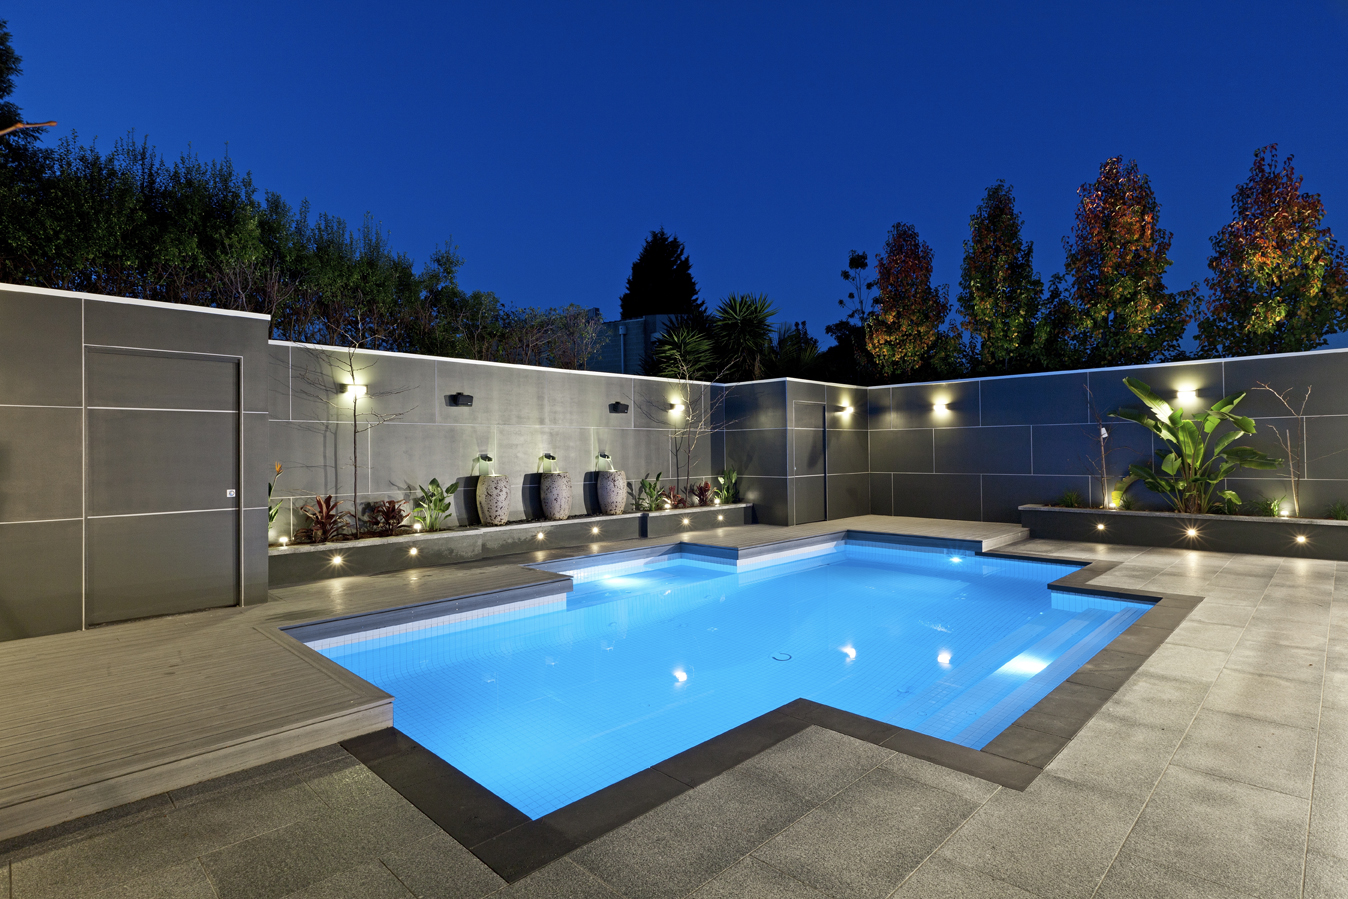 Backyard landscaping ideas swimming pool design for Pool design program